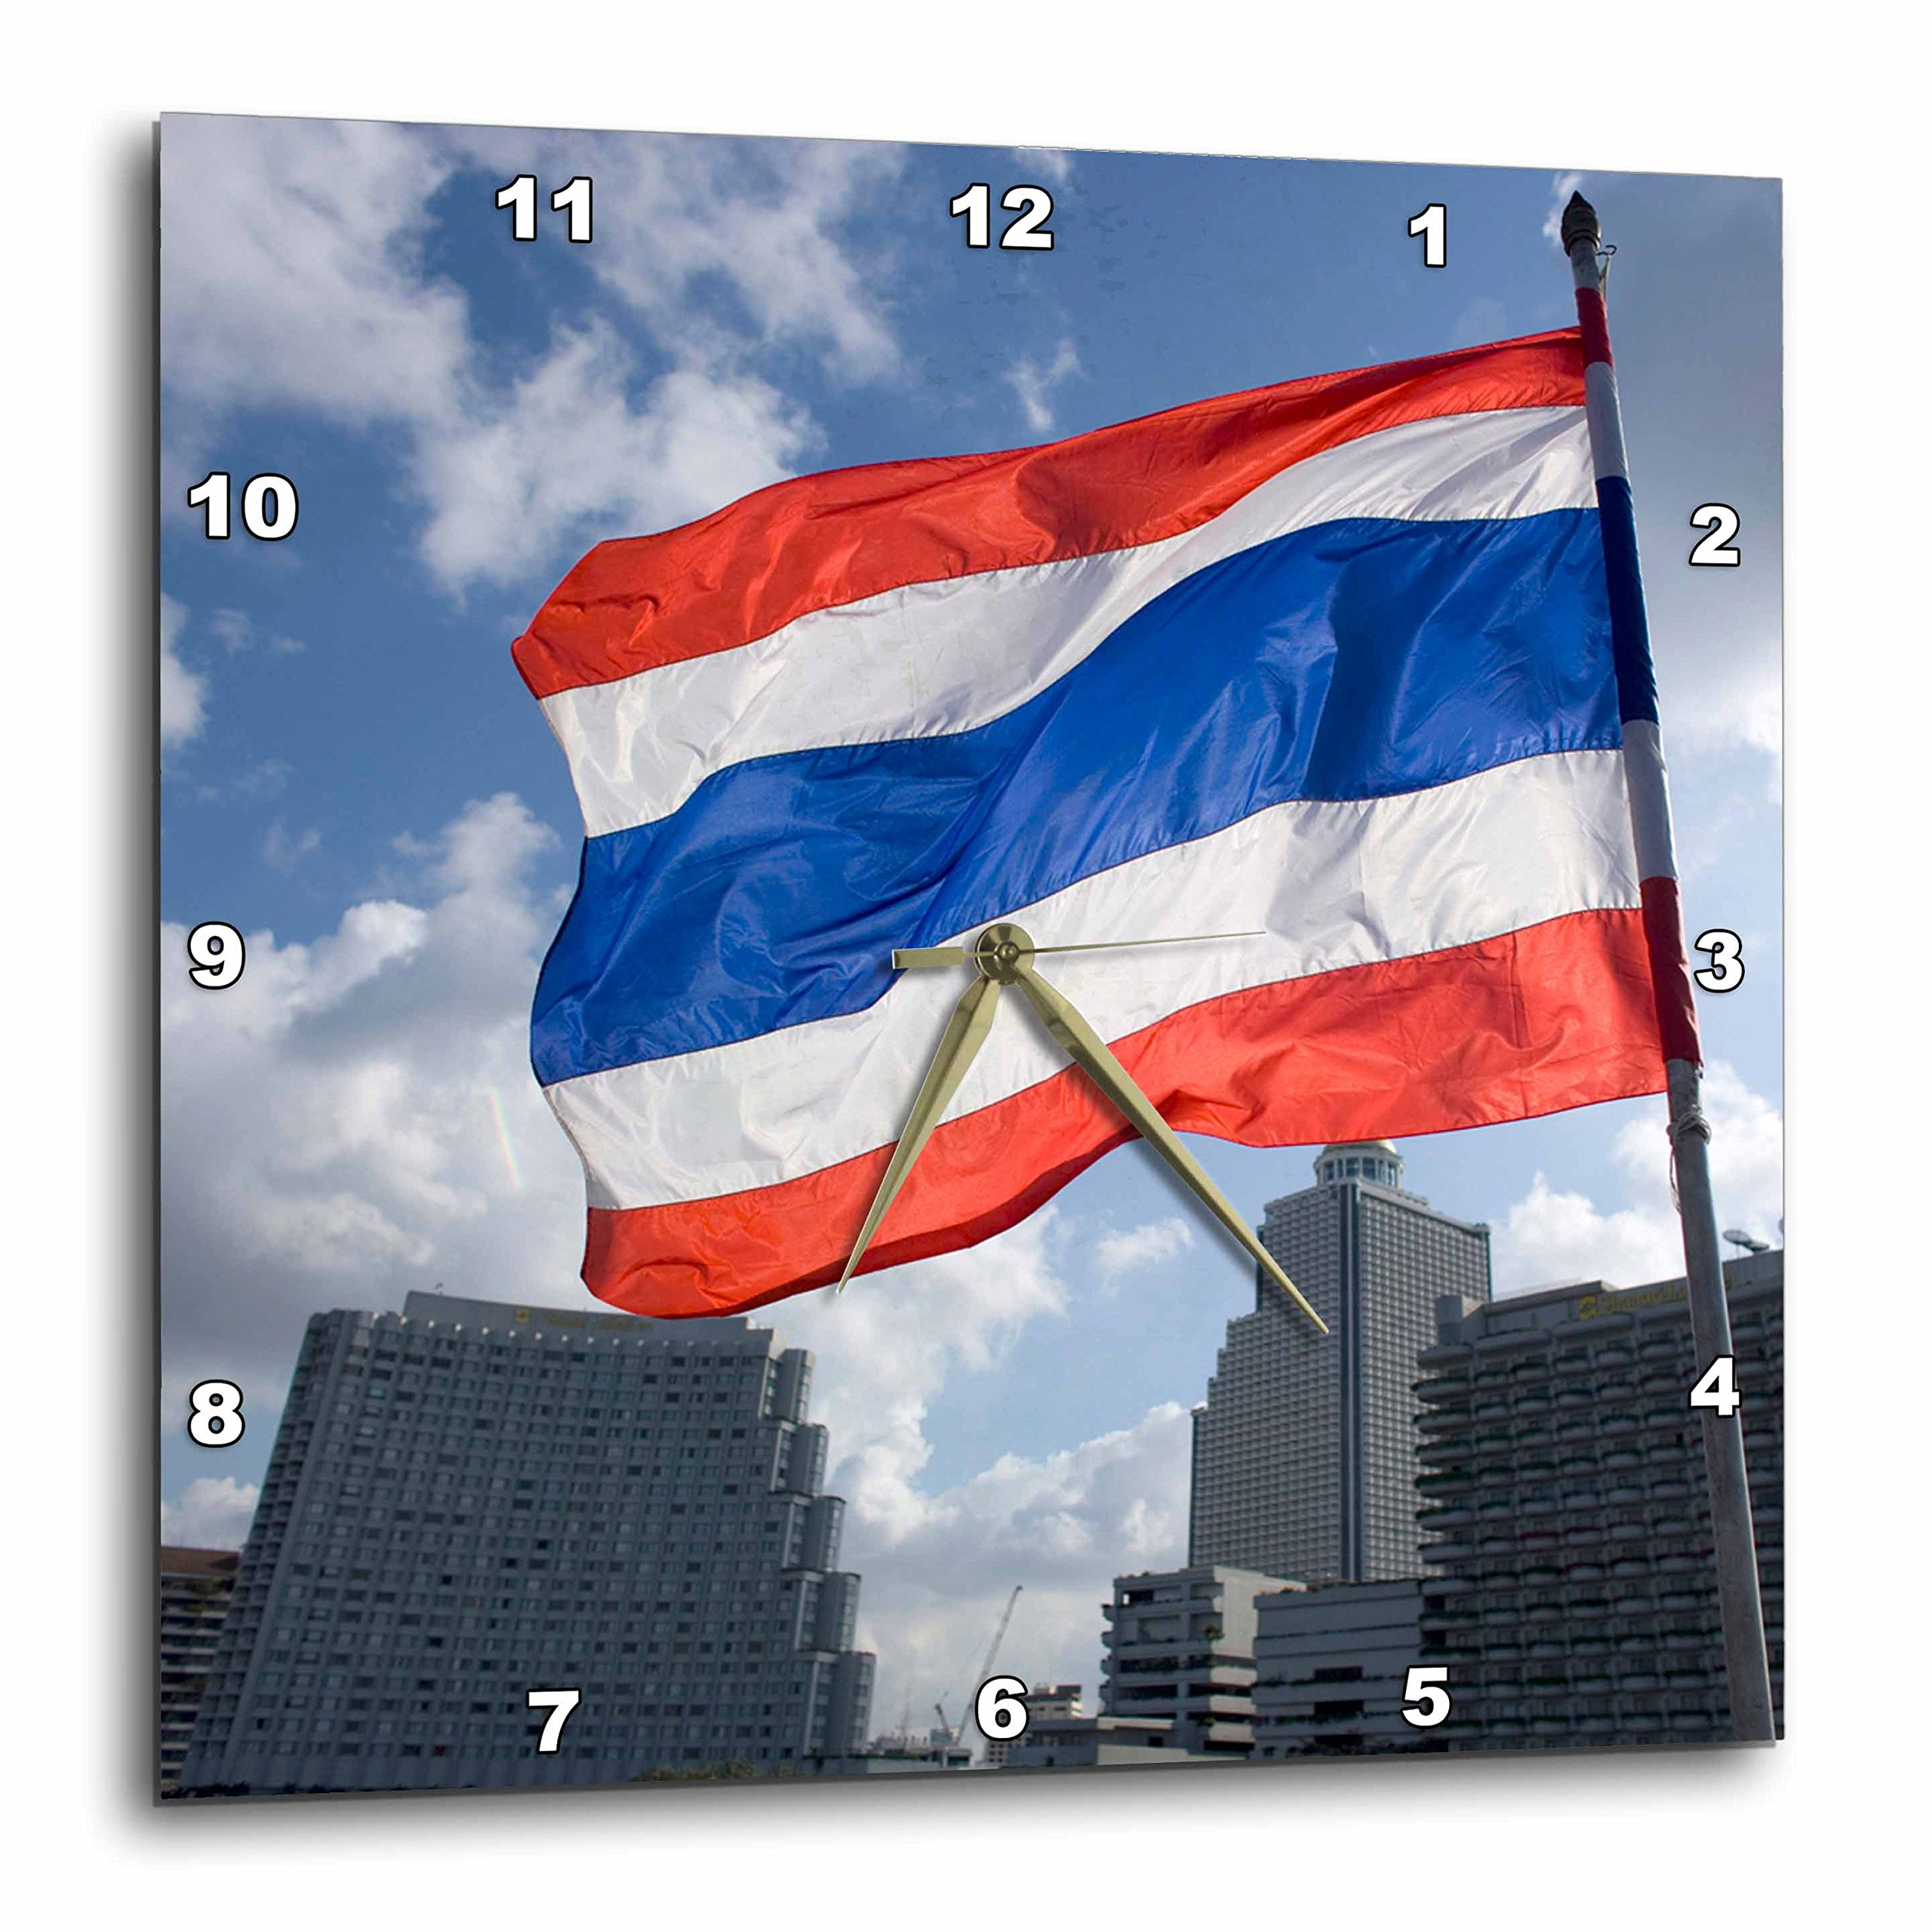 3dRose dpp_72068_3 Thai Flag & Kings Flag, Thailand-As36 Ryo0049 Russell Young Wall Clock, 15 by 15'' by 3dRose